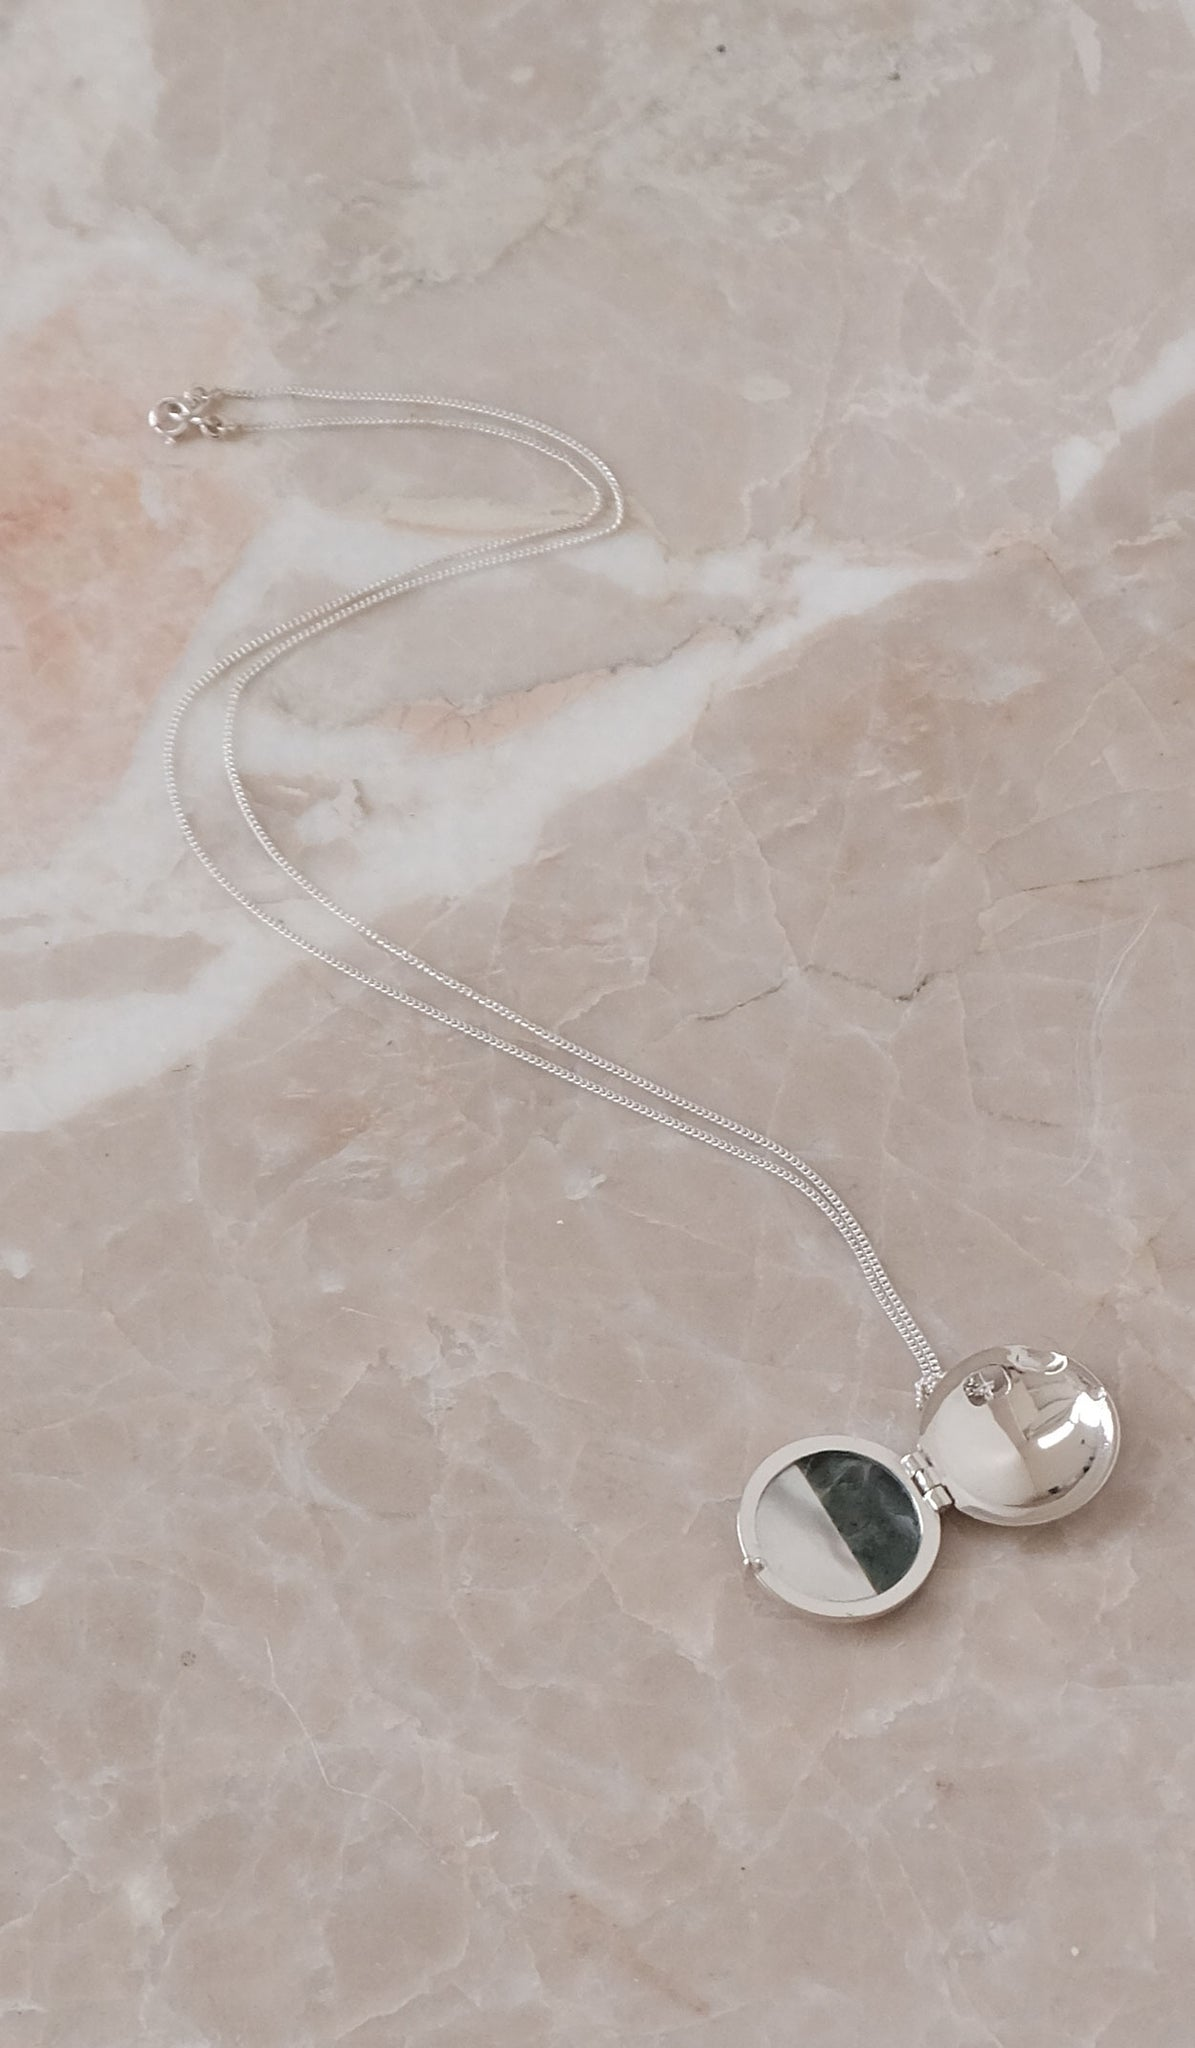 Ursa Major Stone Locket Necklace: Jade and Pearl